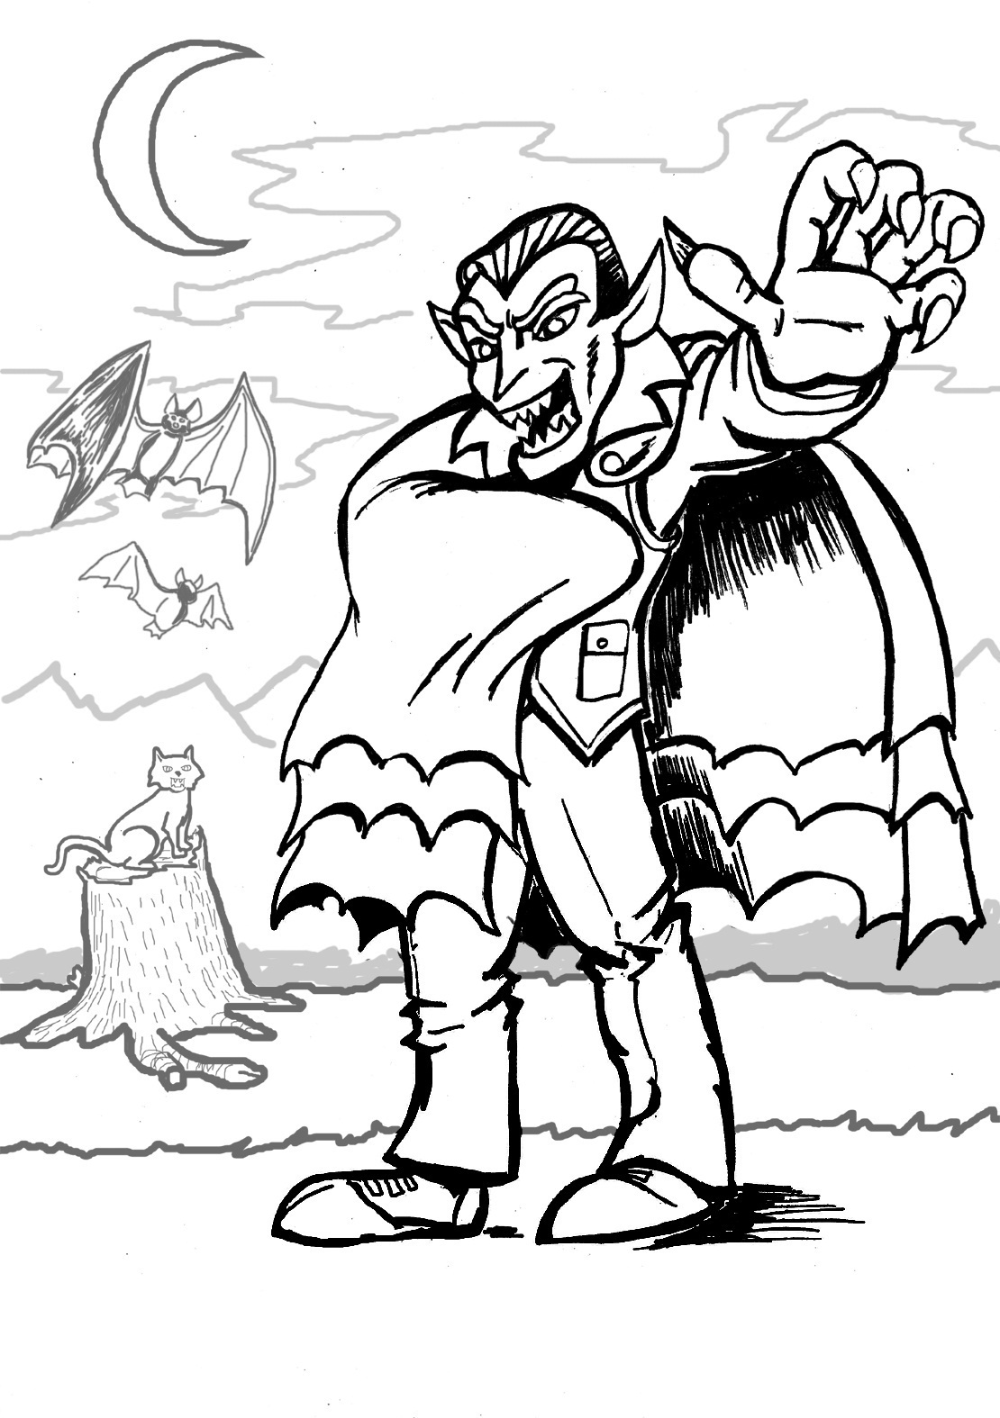 Free Vampire Coloring Sheets Google Search In 2020 Avengers Coloring Pages Cute Coloring Pages Disney Princess Coloring Pages